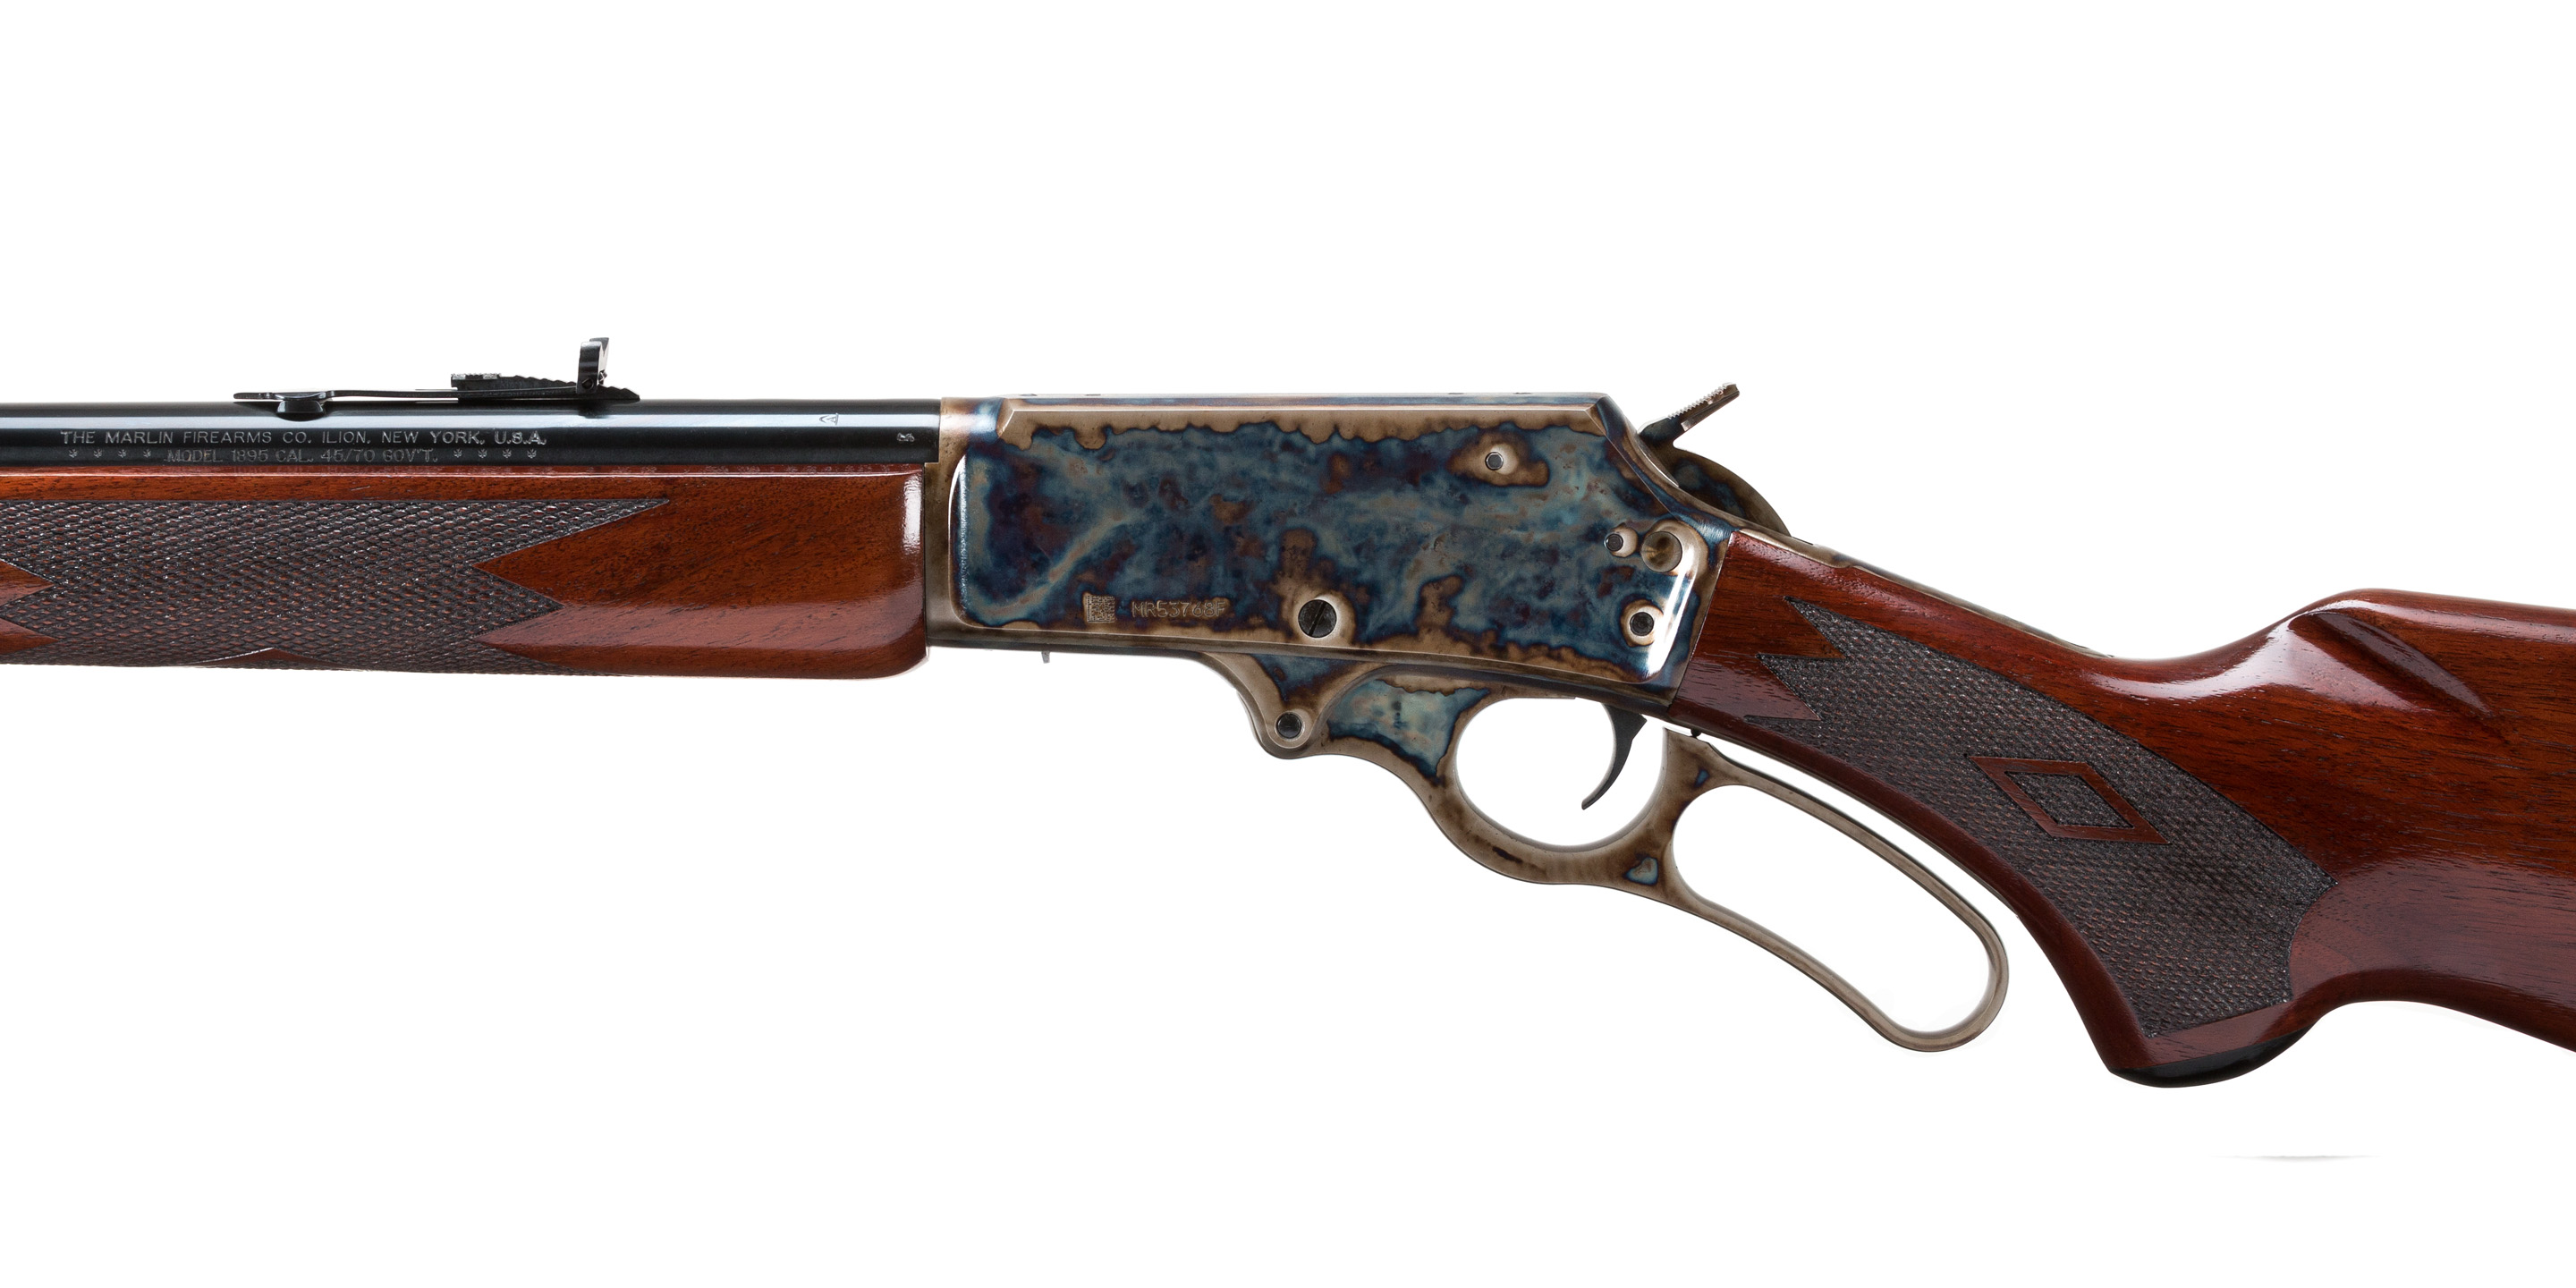 Turnbull Finished Marlin 1895 Made To Order Restoration Lever Action 22 Parts Diagram On Home The Showroom Firearms